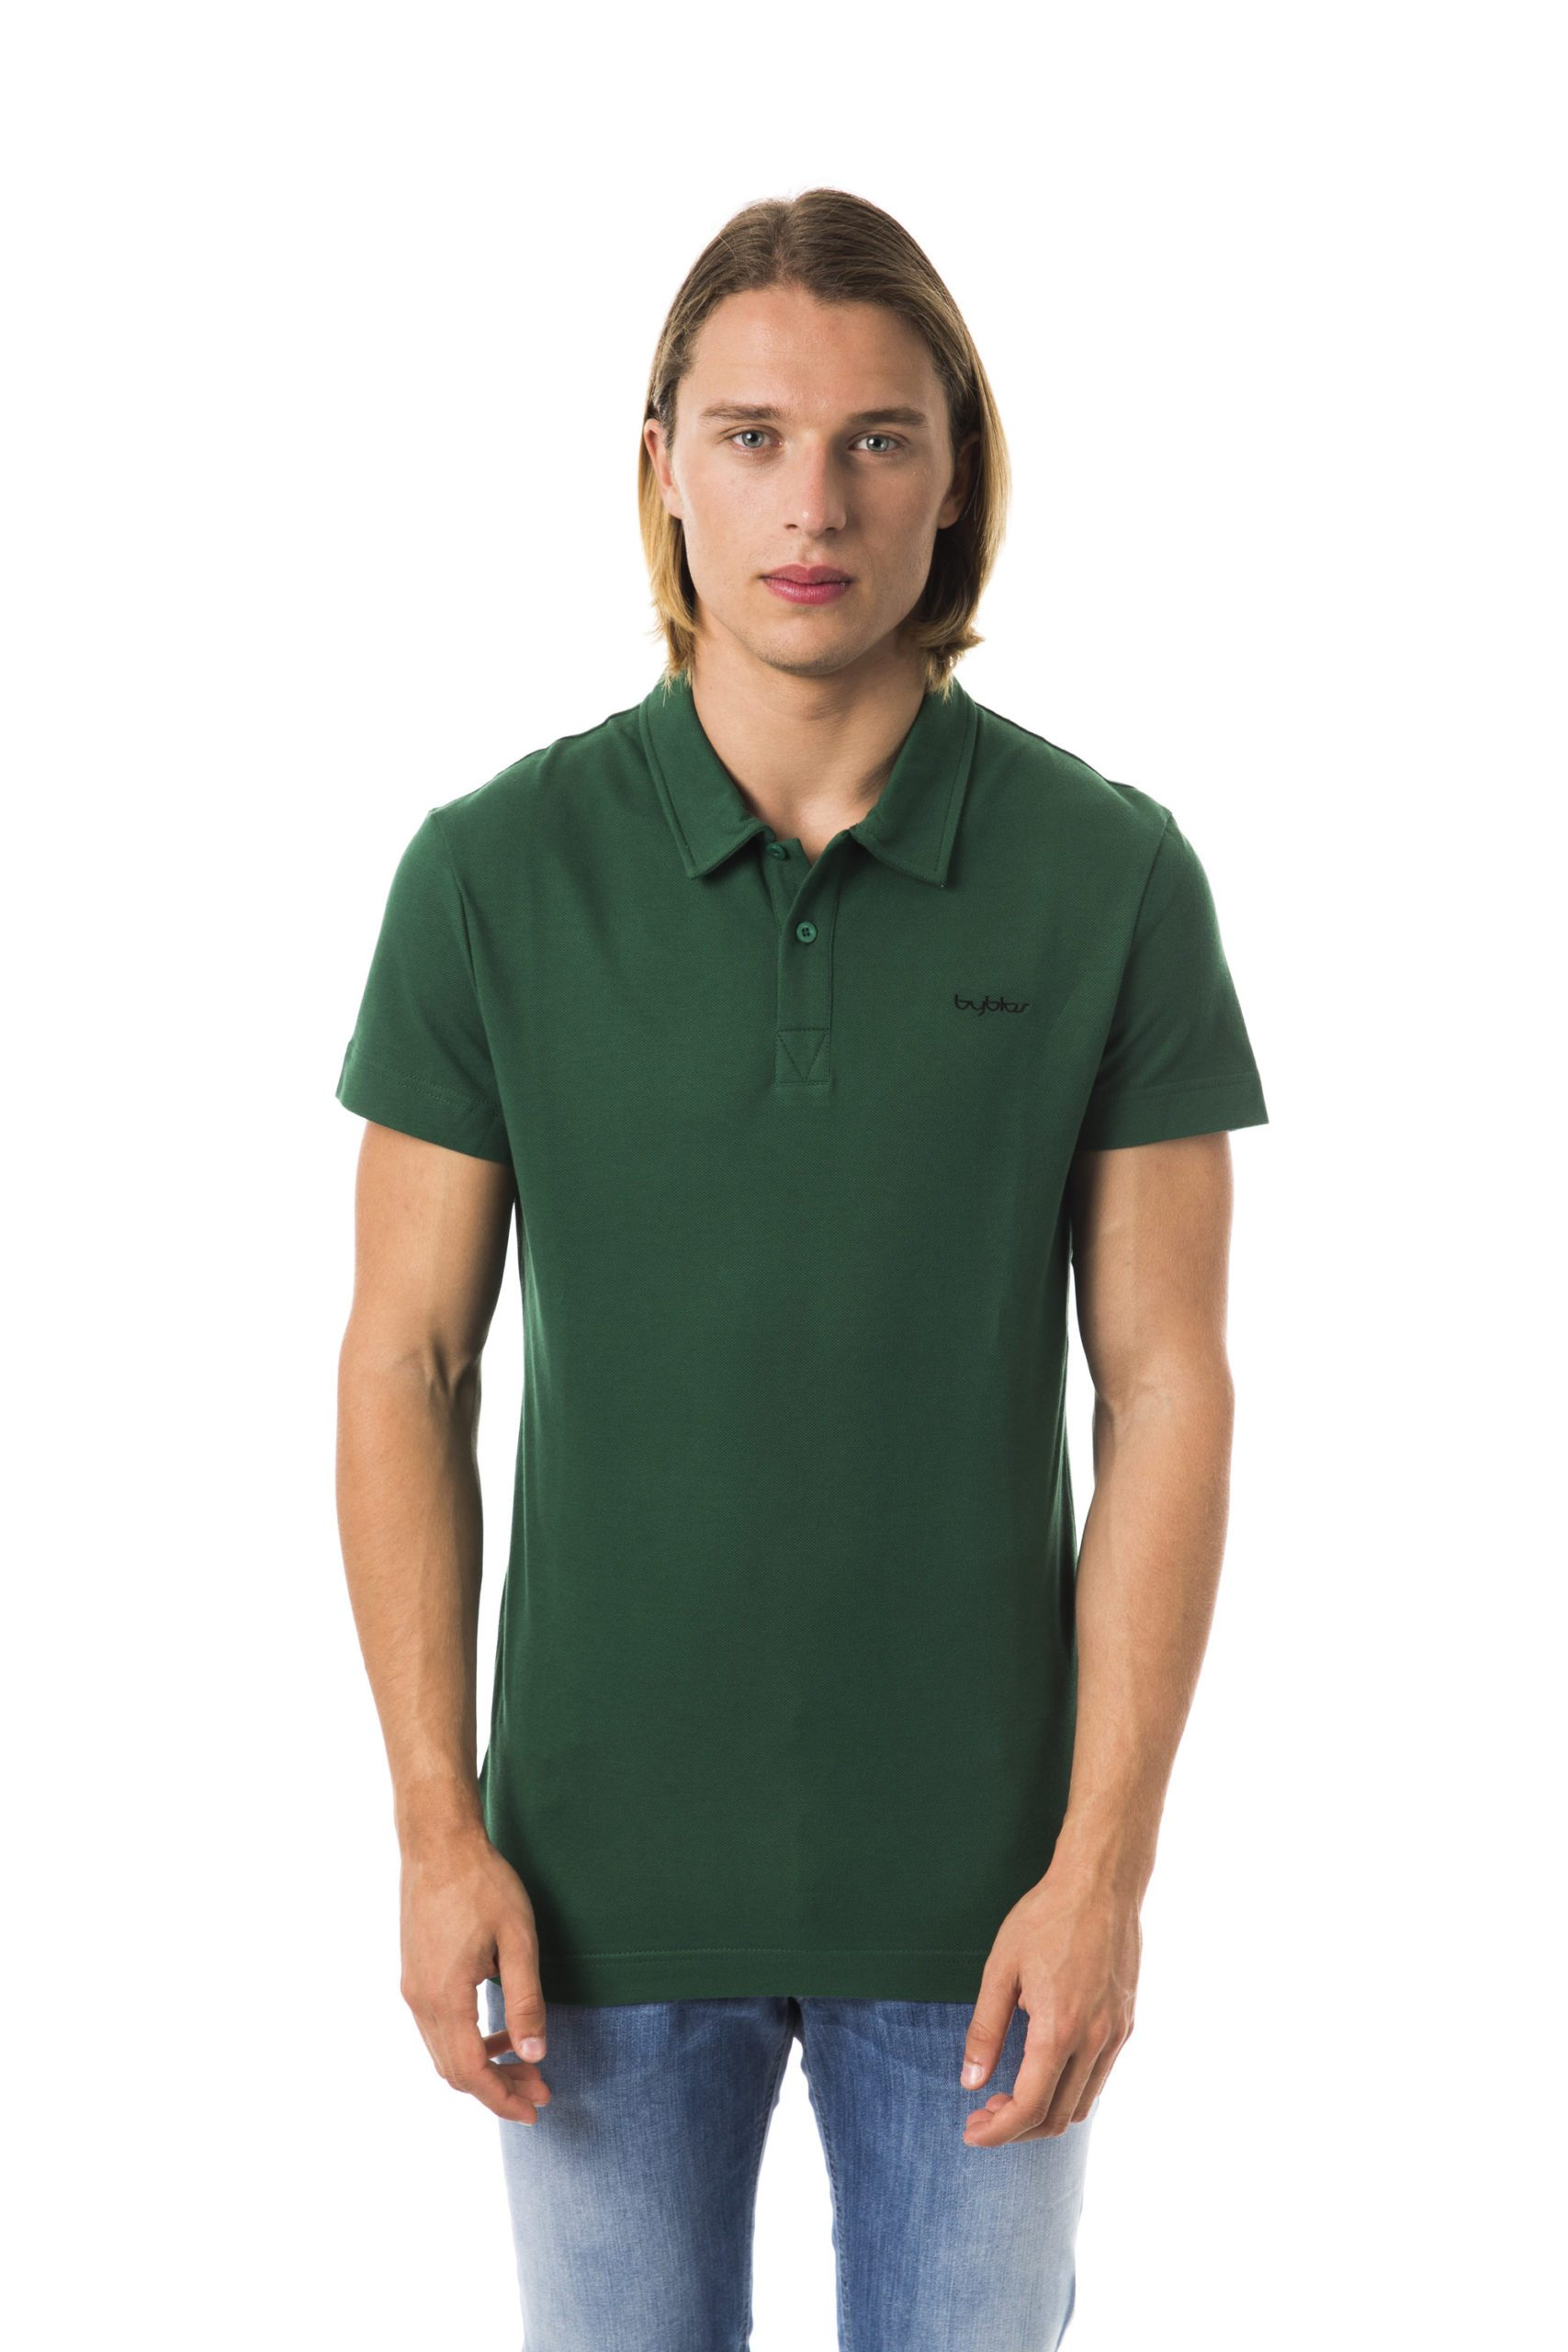 Byblos Men's Polo Shirt Green BY992326 - XL